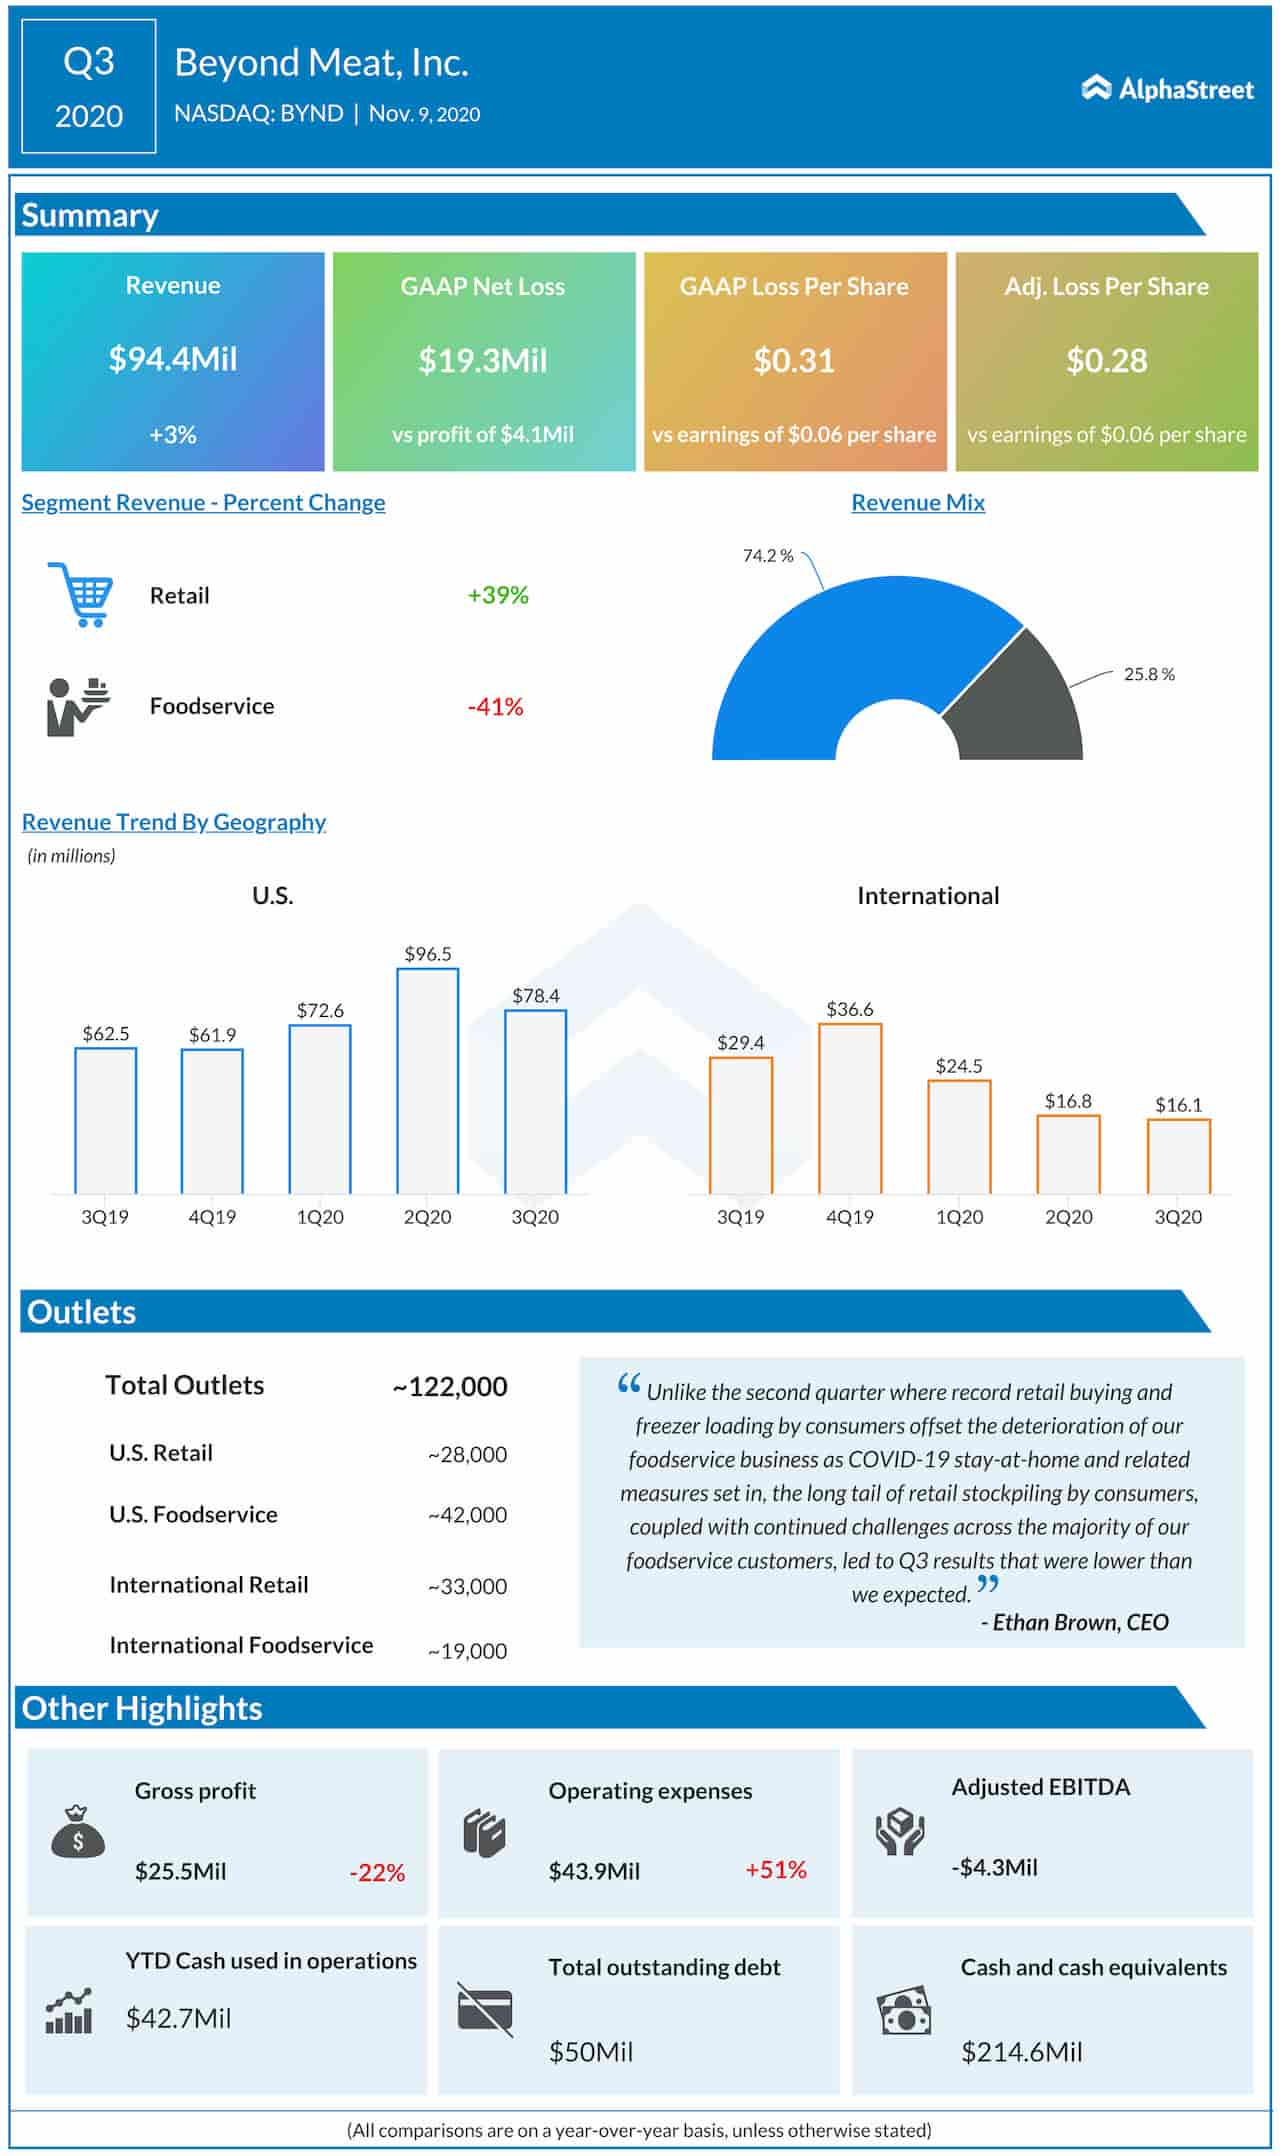 Beyond Meat Q3 2020 earnings infographic